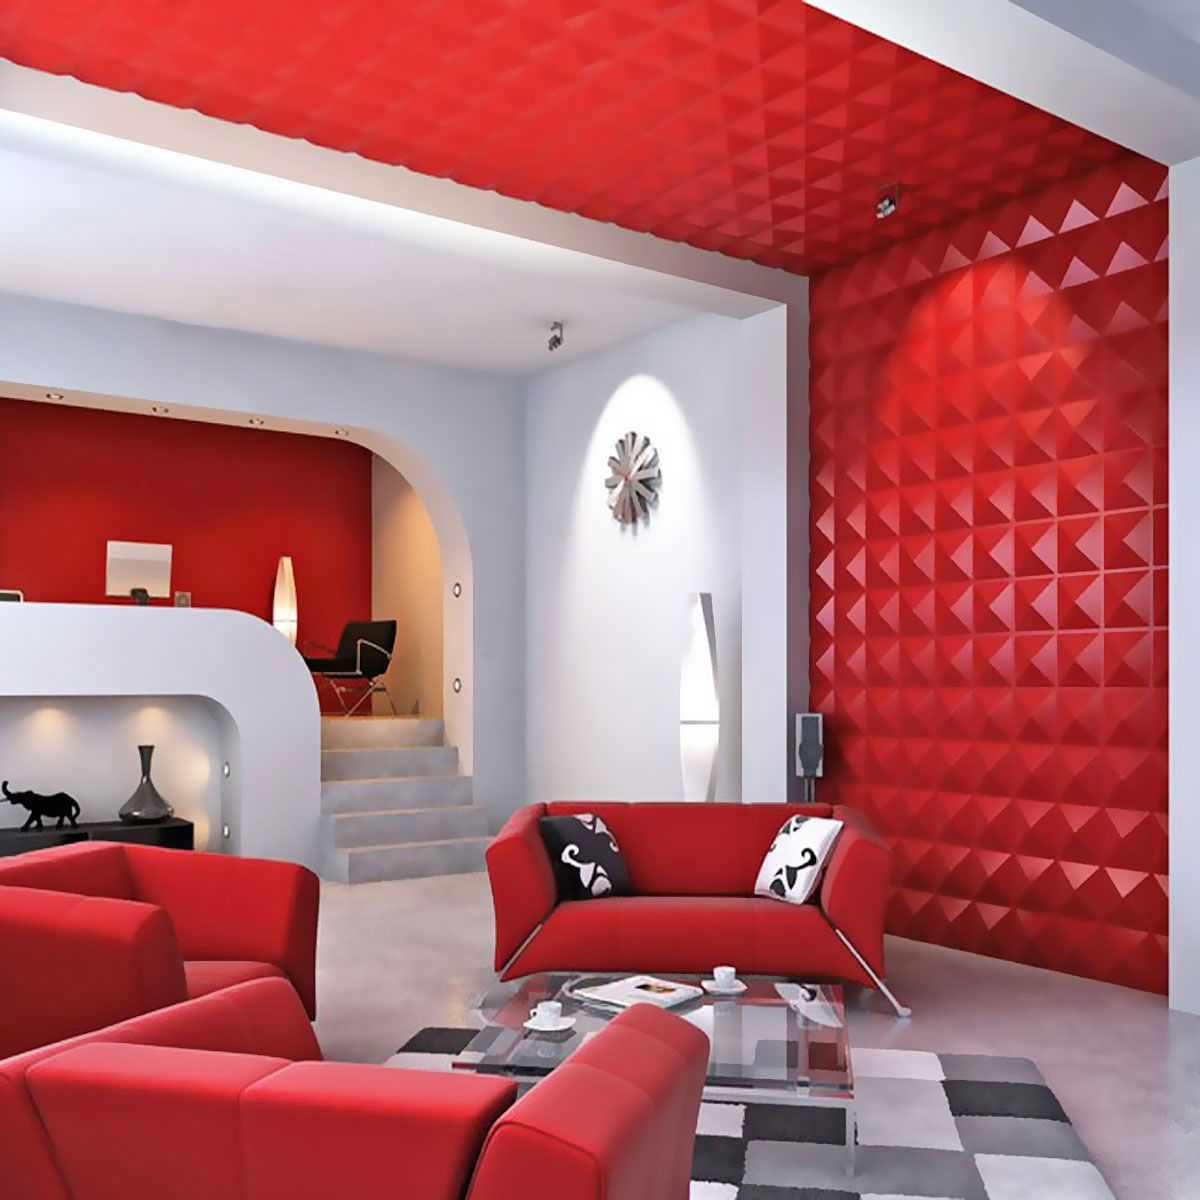 3d Wall Tiles Sticker